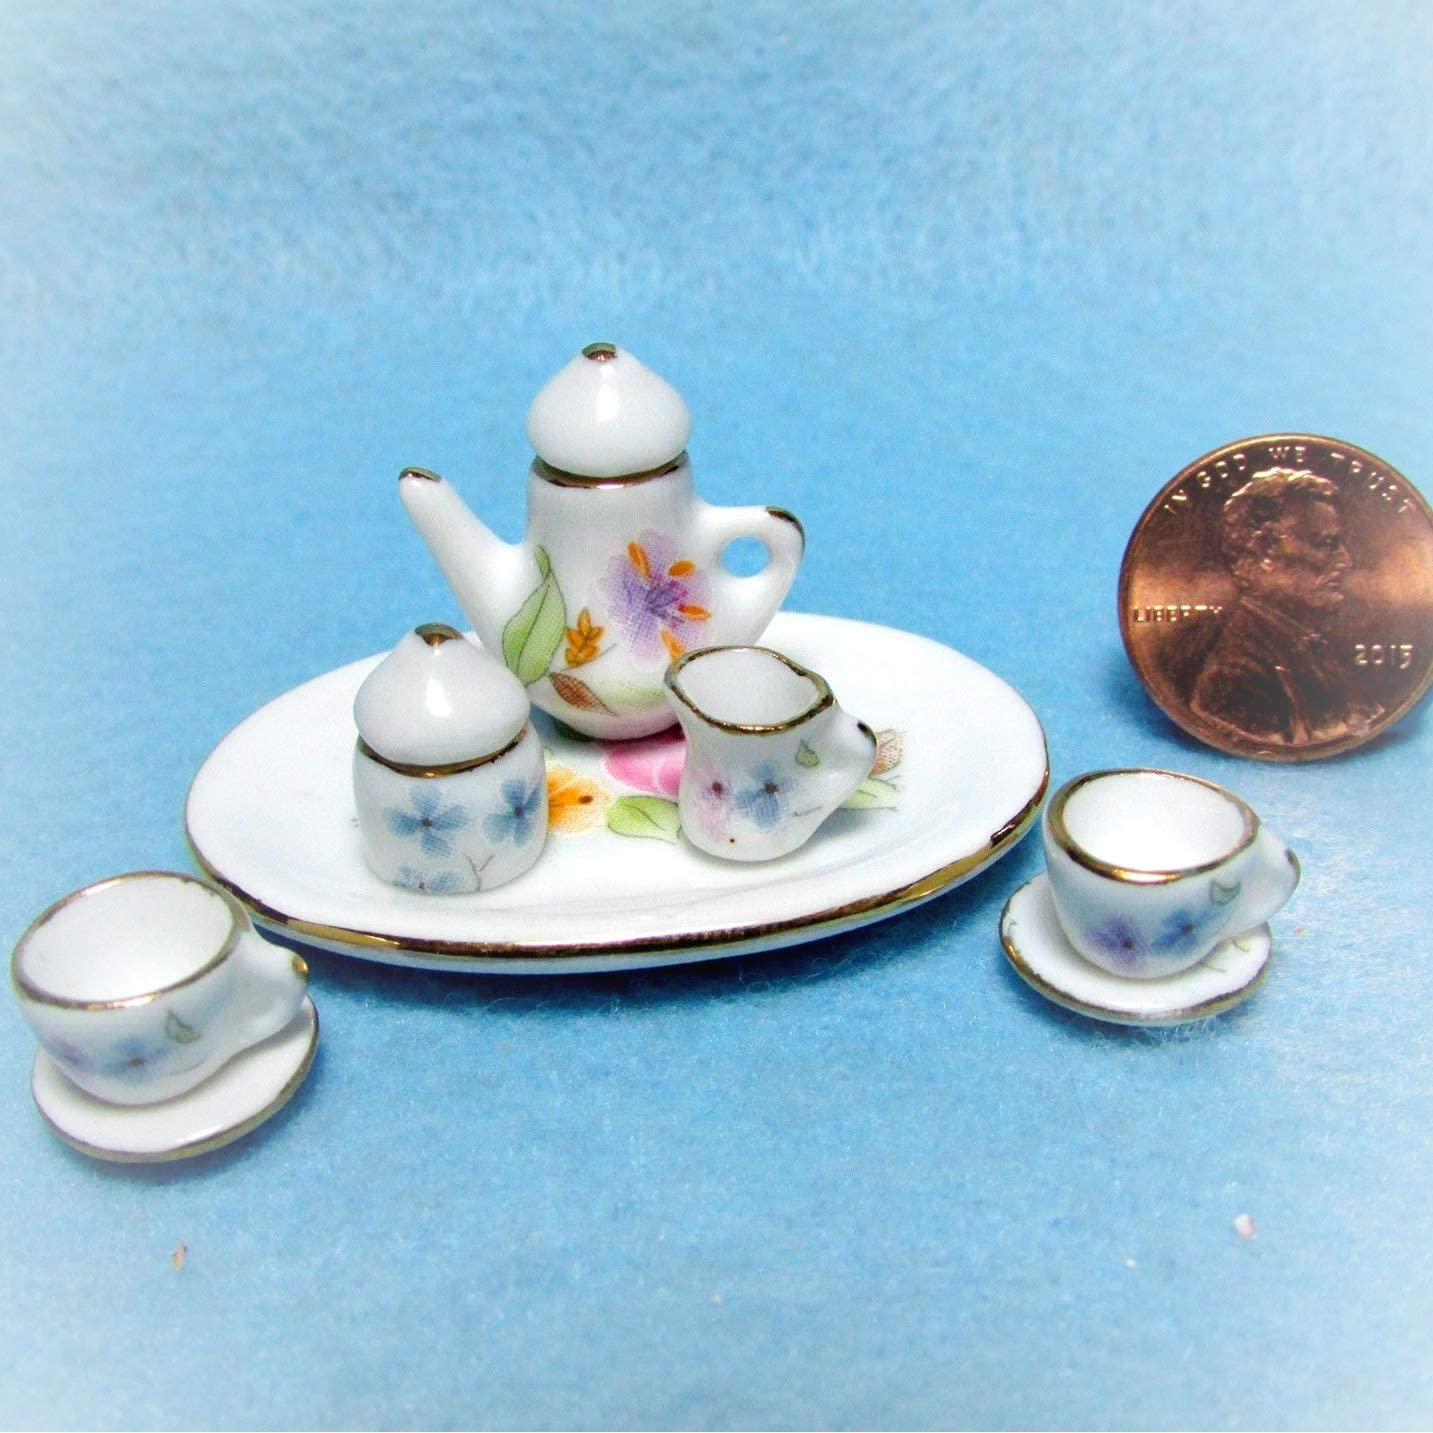 TEAPOT AND TEACUP SET Miniature Fairy Magical Doll House Garden Ornament Statue